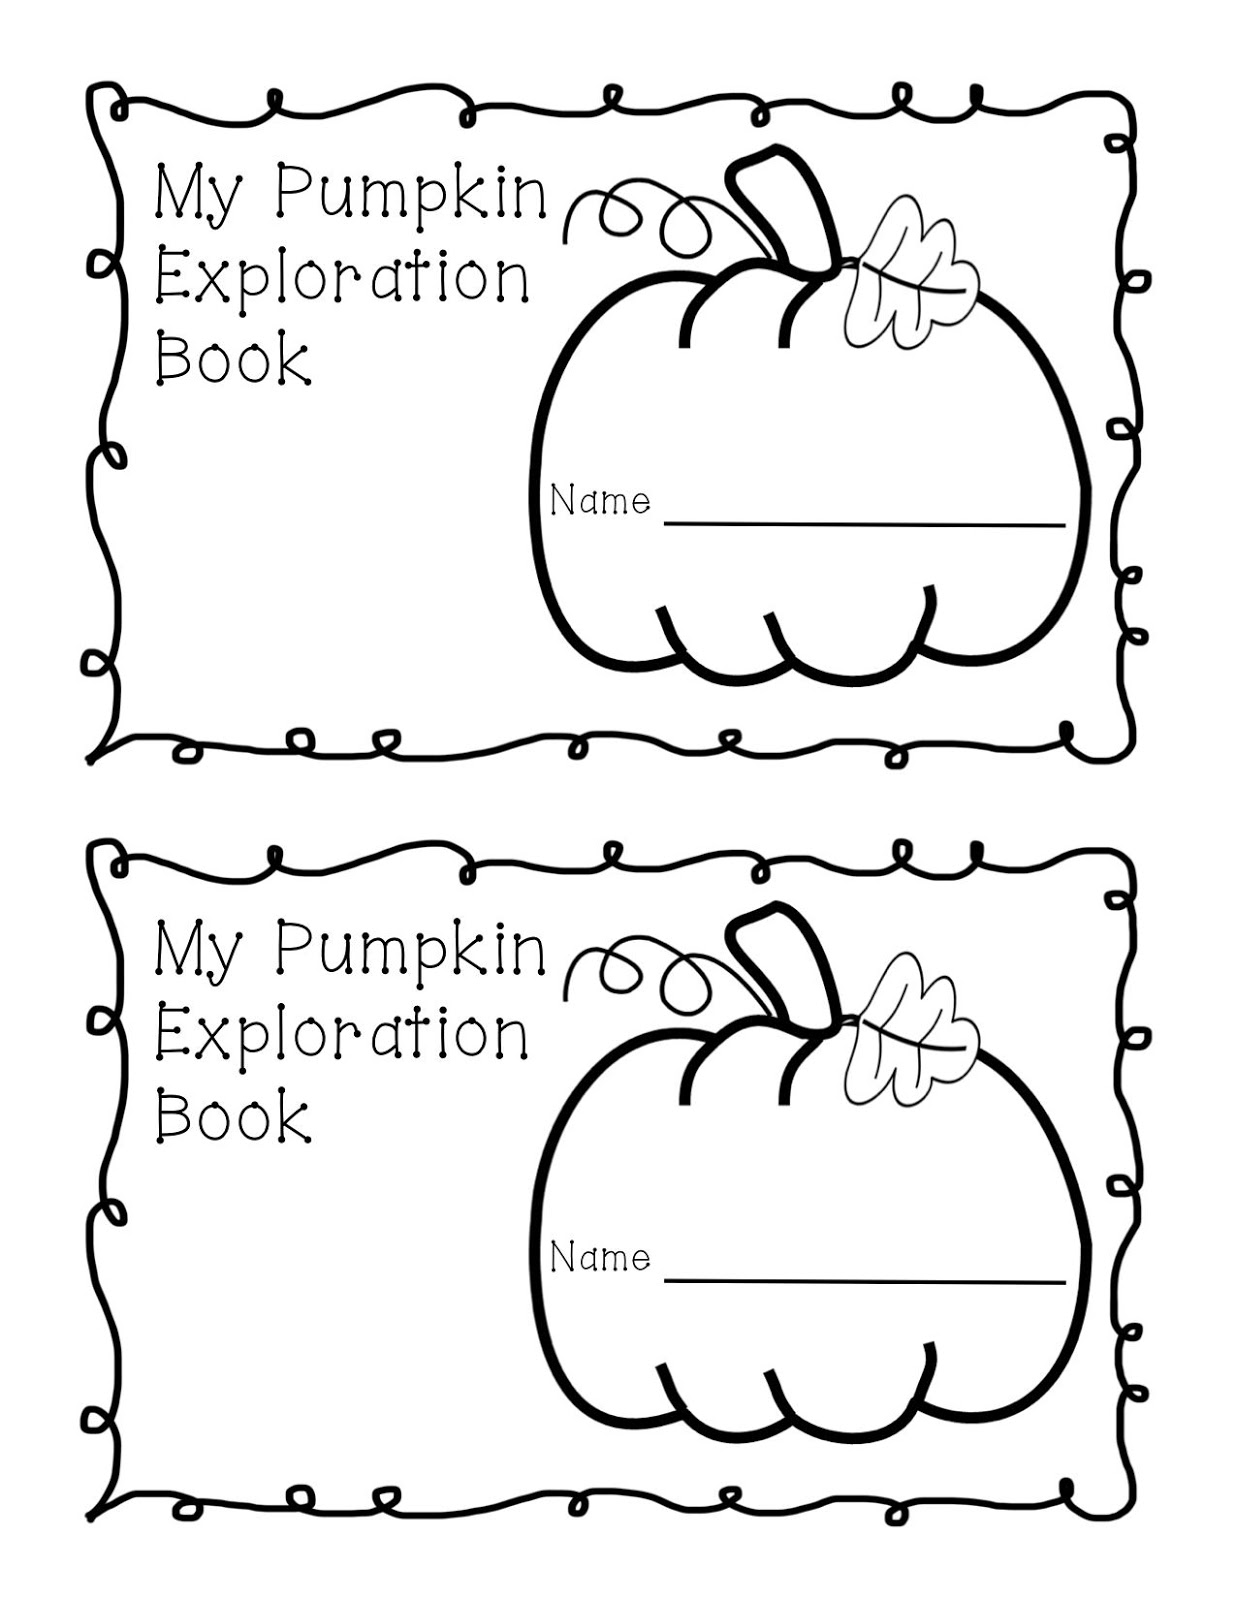 Kinder Learning Garden: Pumpkin Exploration Book Freebie!